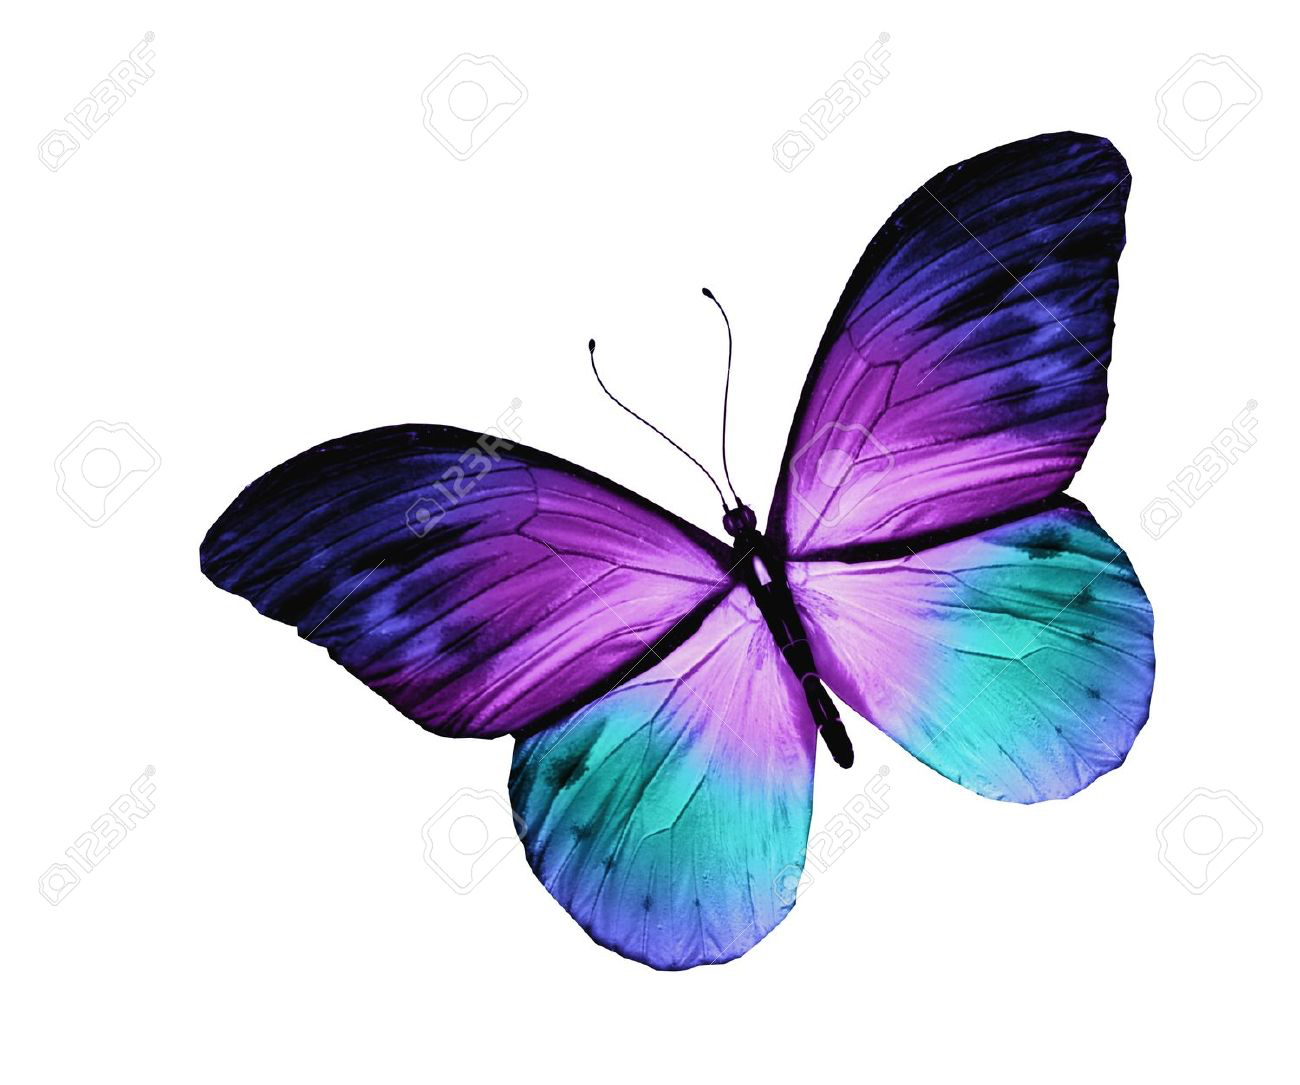 Purple Rose clipart small butterfly #8